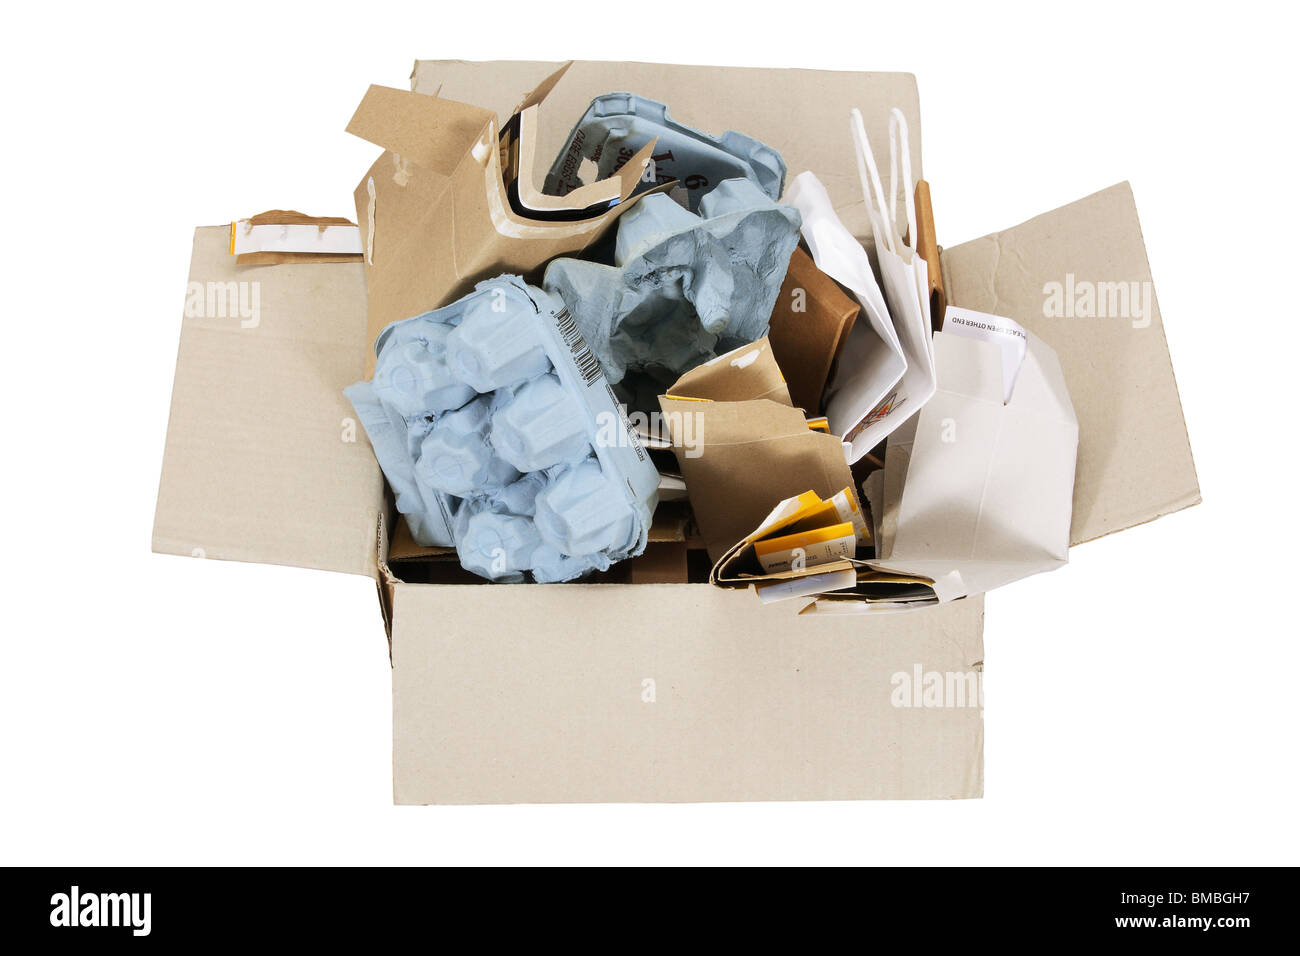 Box of Rubbish for Recycle - Stock Image